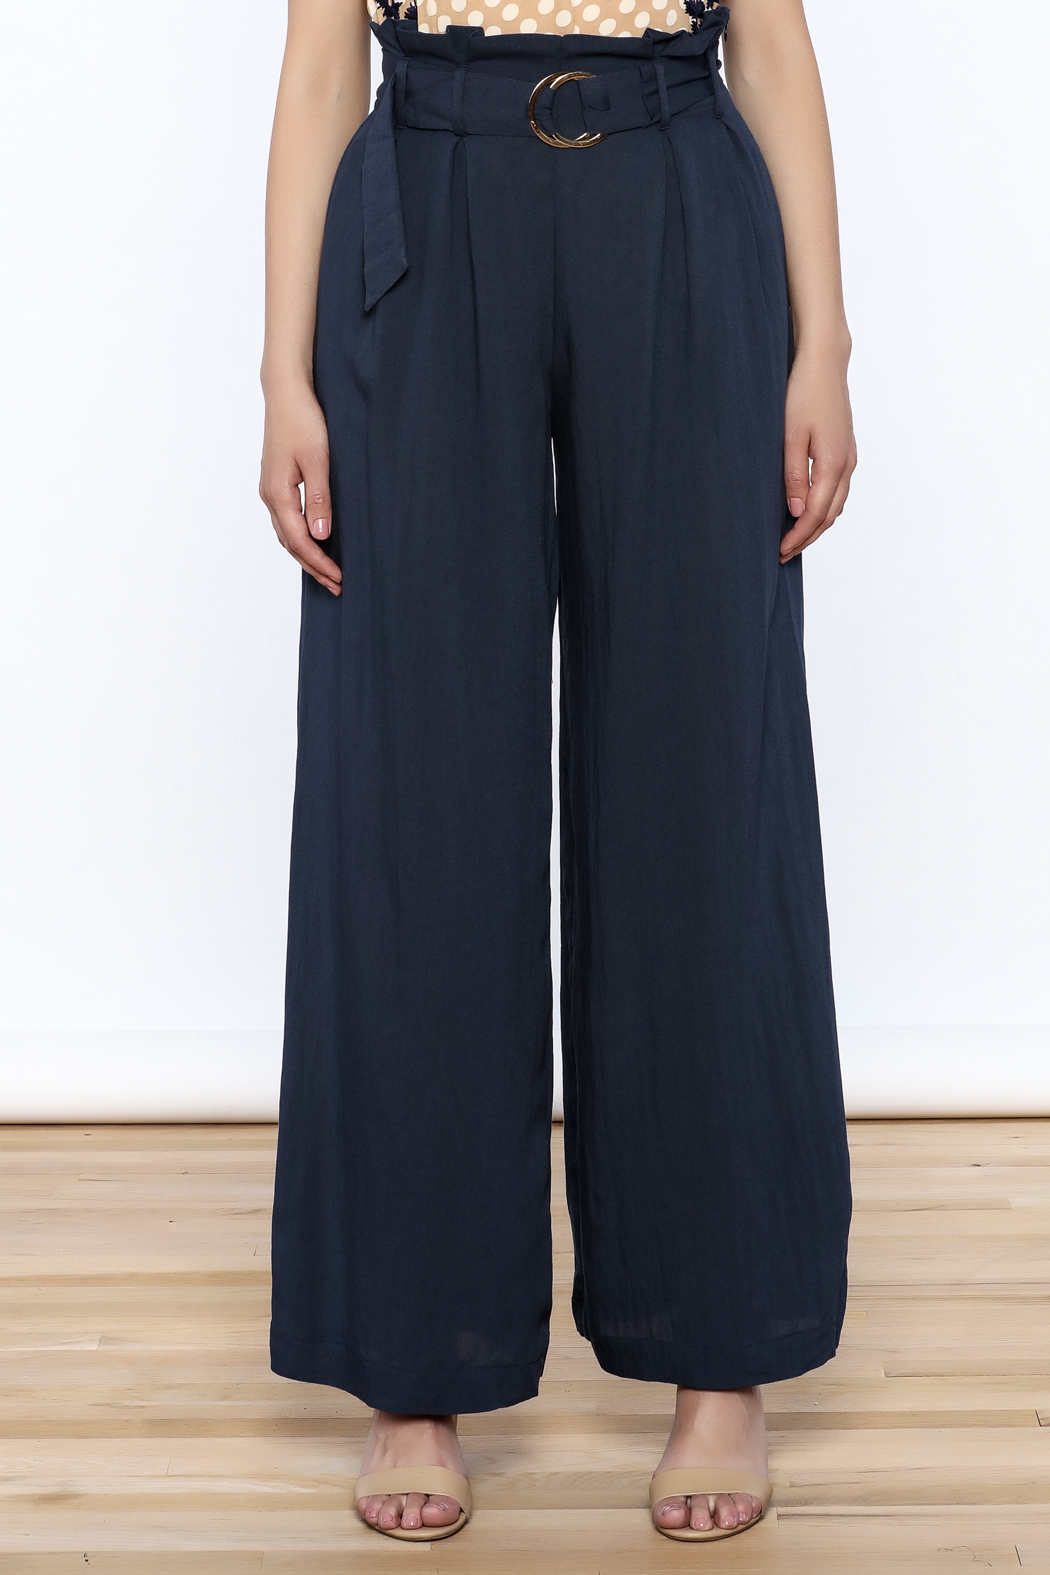 Jealous Tomato Navy High Waist Pants - Side Cropped Image